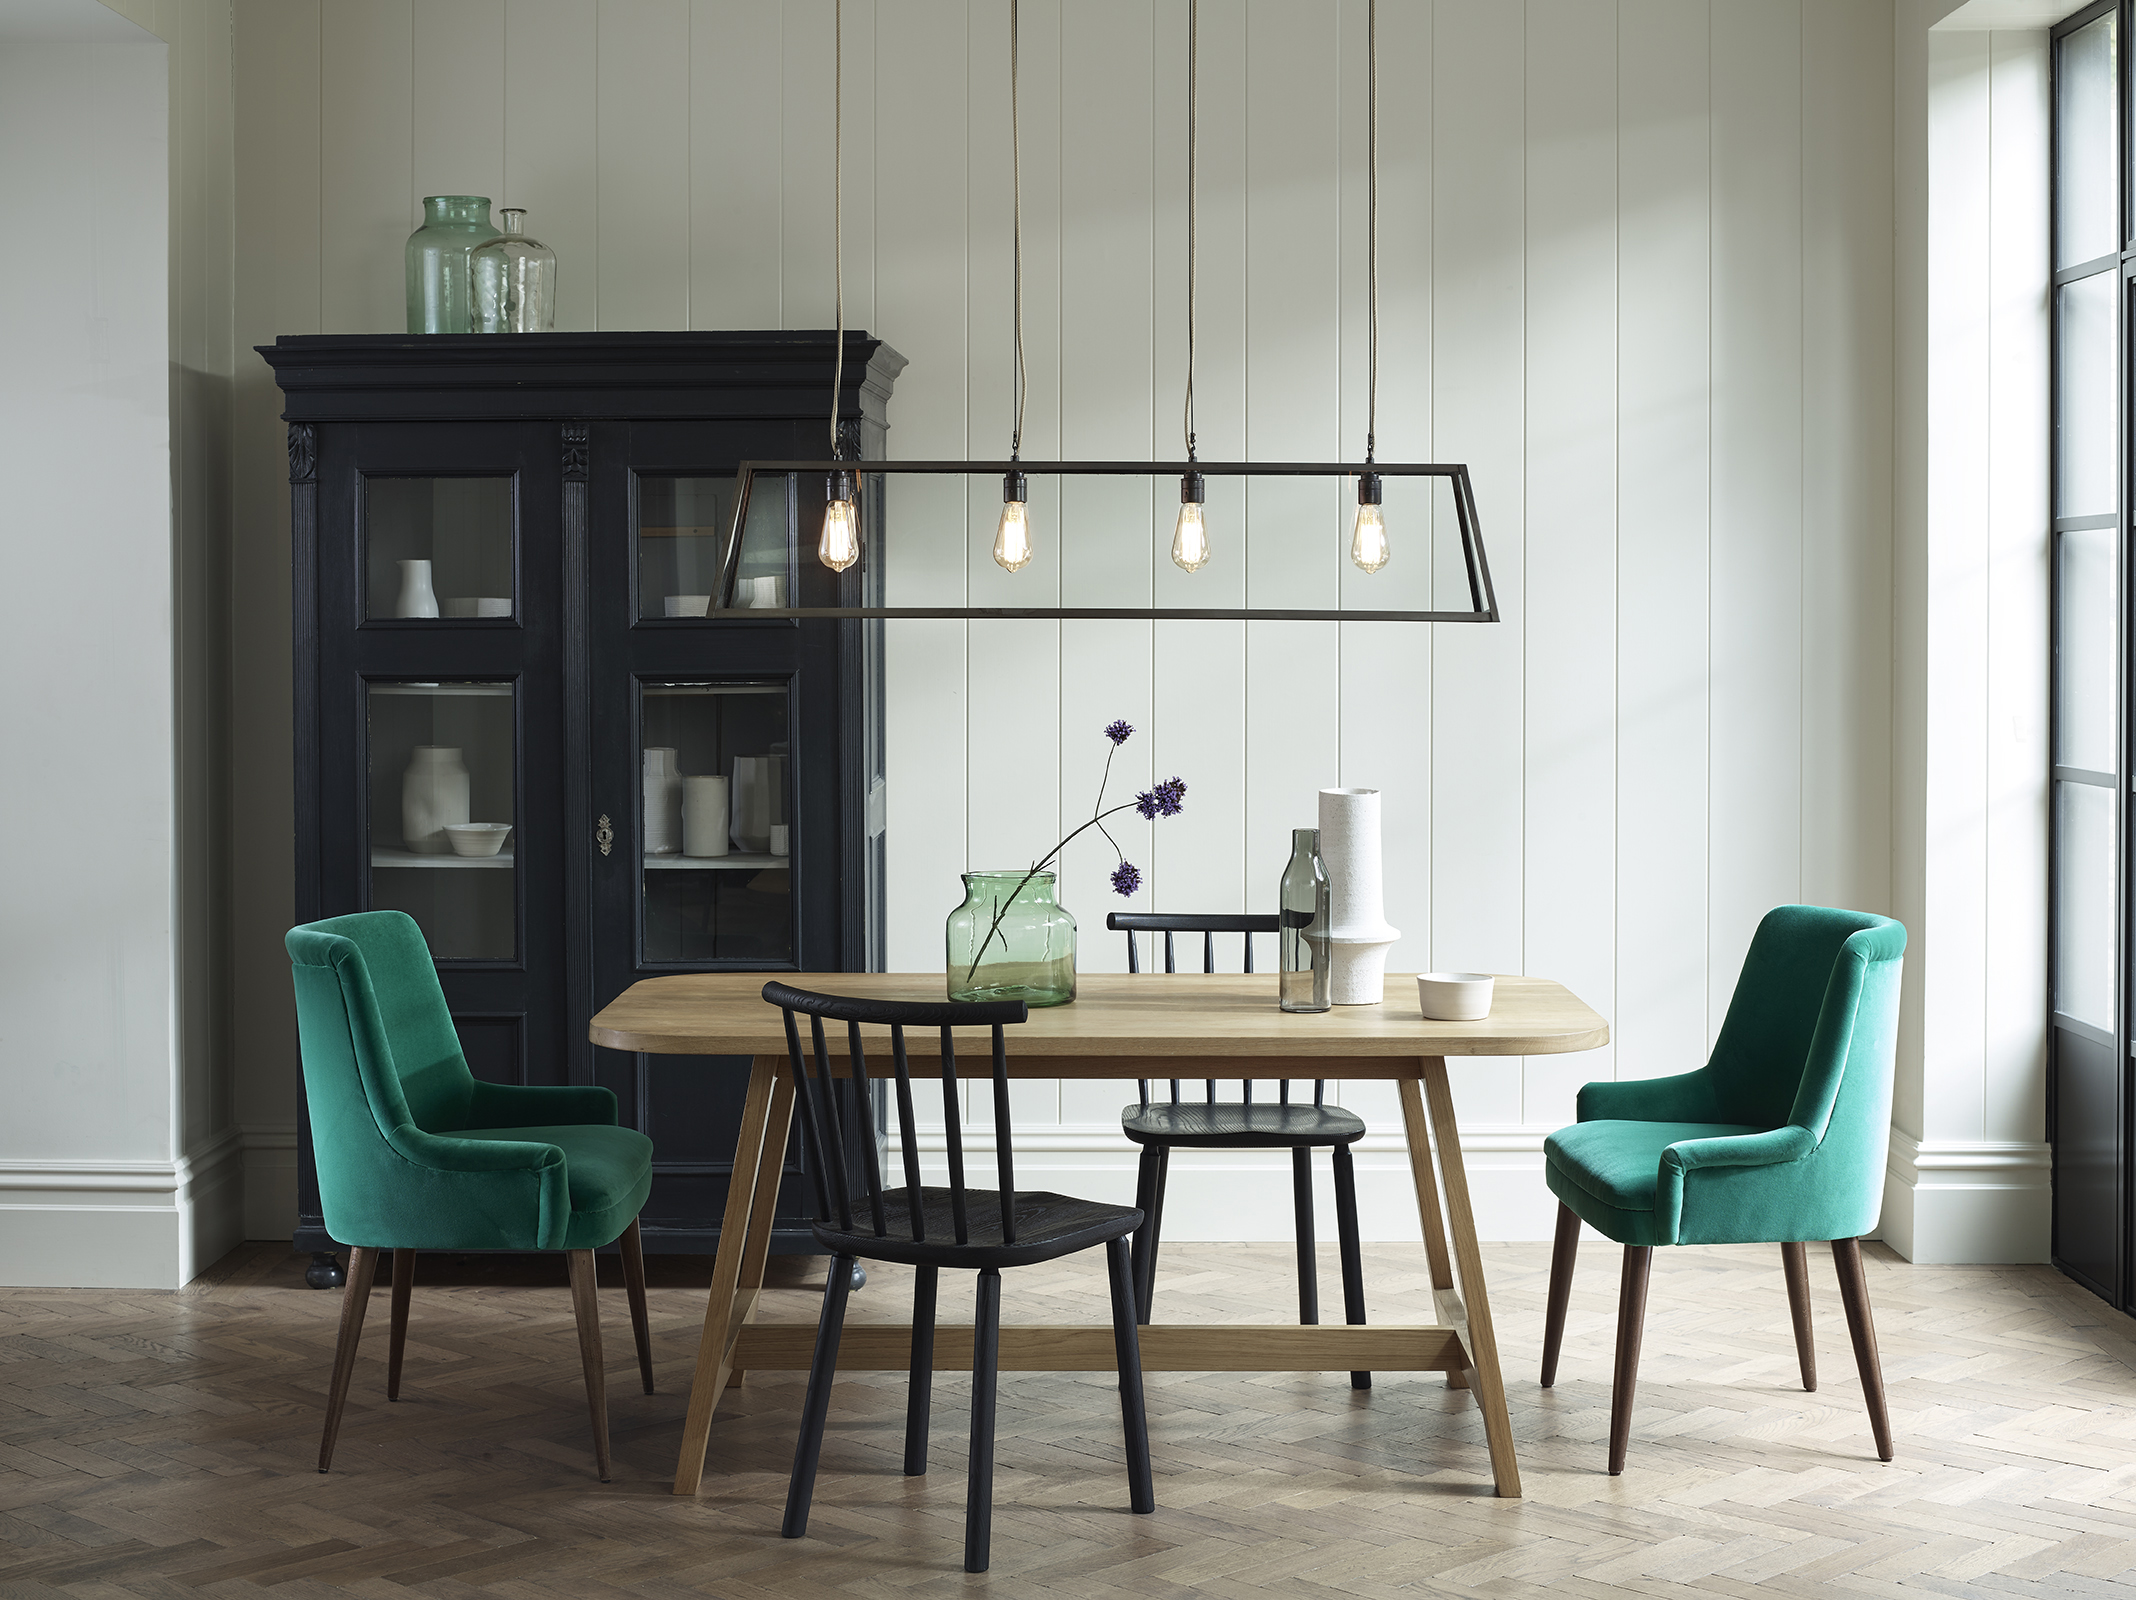 Dining Room Ideas Designs Layouts And, Dining Room Inspiration